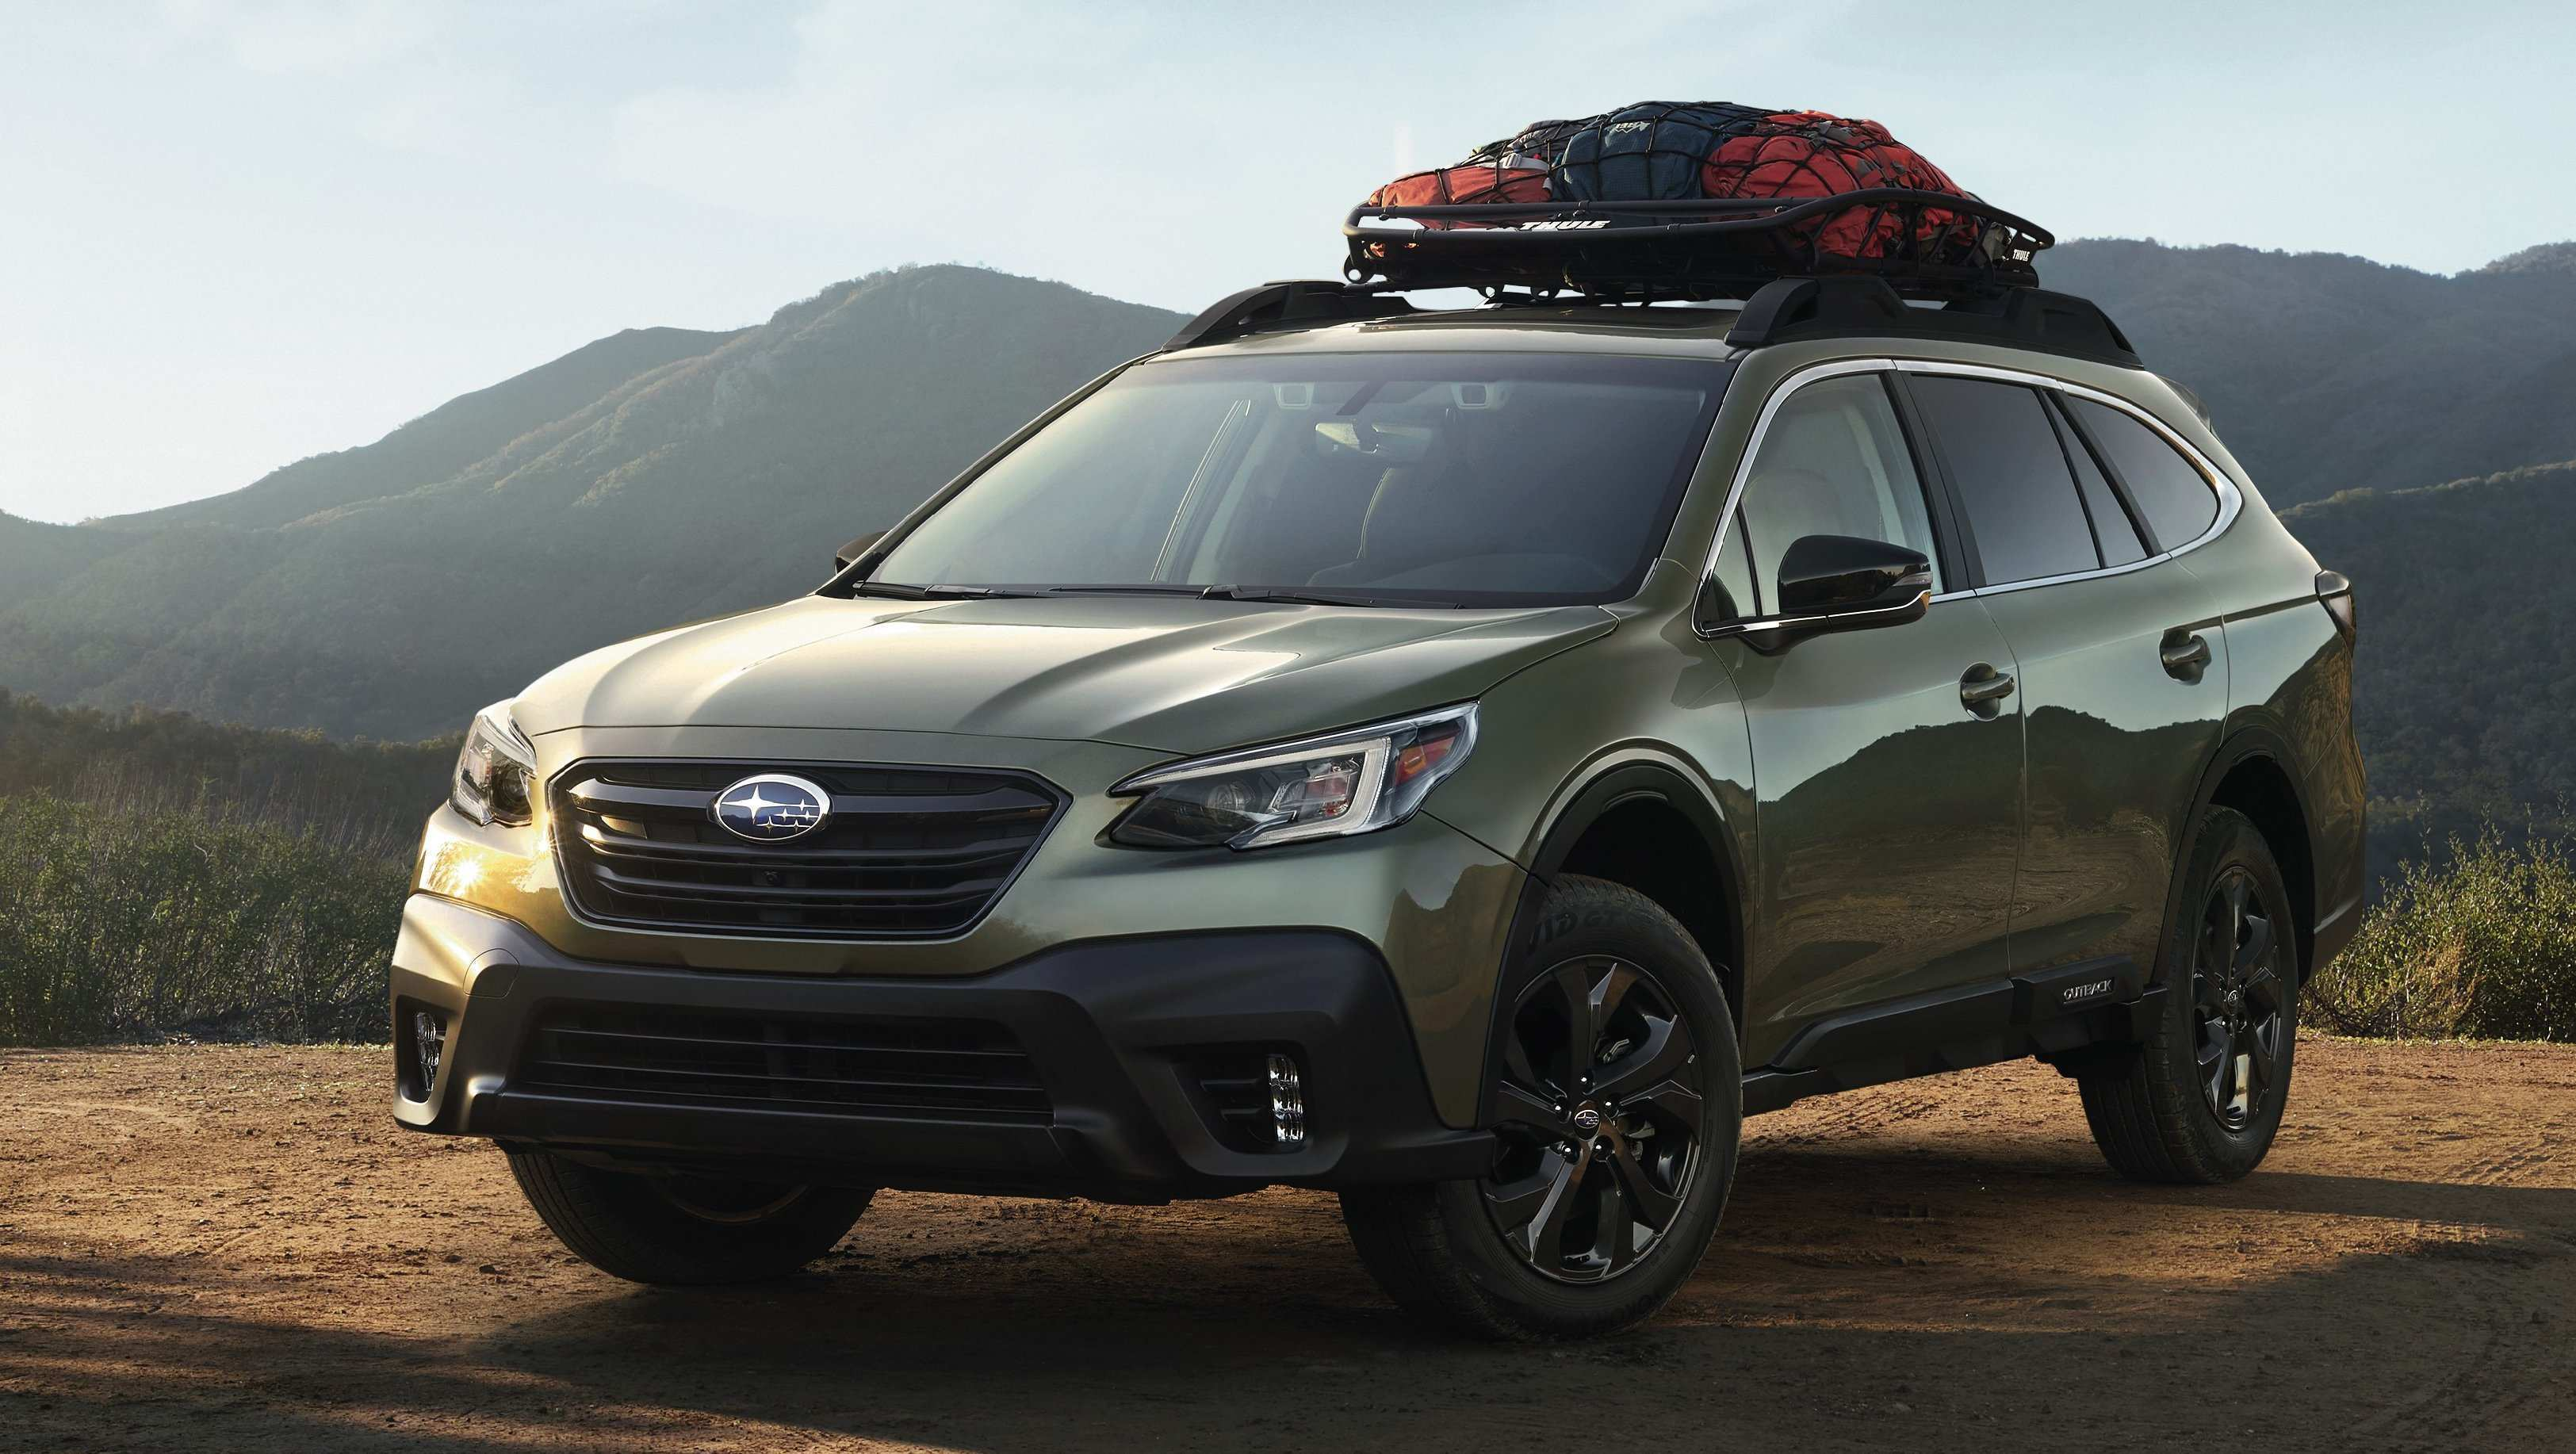 71 New 2020 Subaru Outback Unveiling Concept